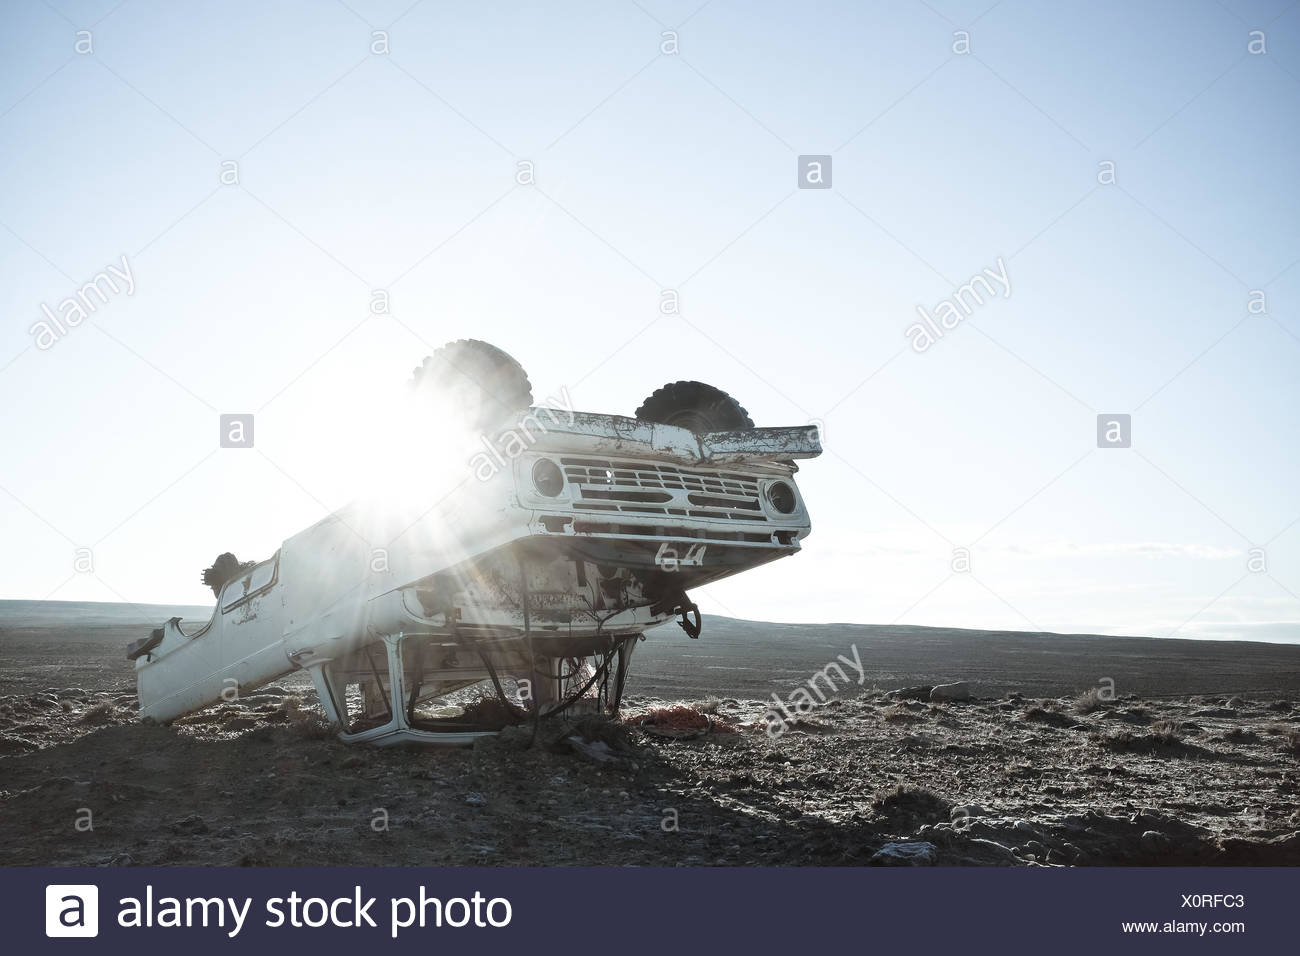 USA, Wyoming, View of abandoned truck - Stock Image